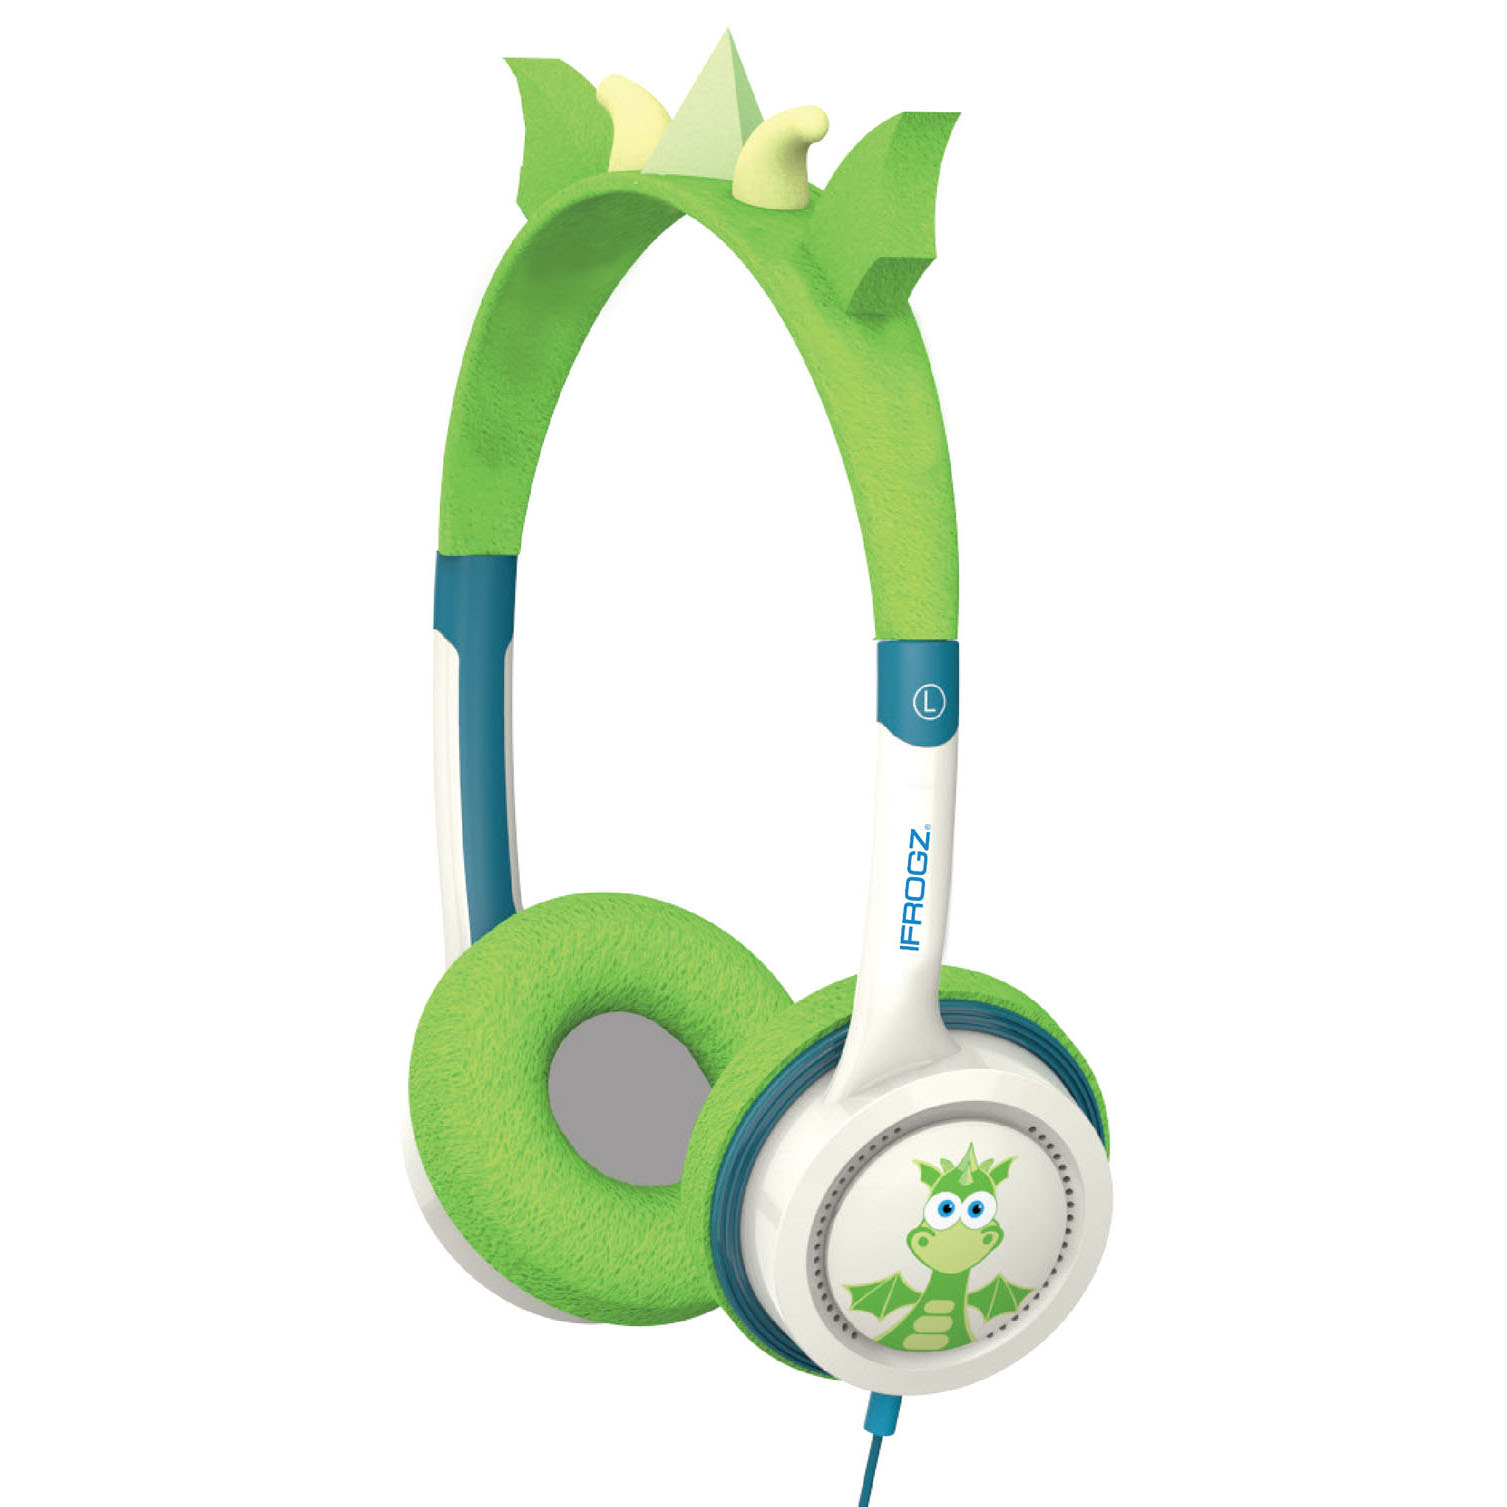 iFrogz by ZAGG Little Rockerz Costume Headphones Green Dragon: Kid-Friendly Volume Limiting Headphones